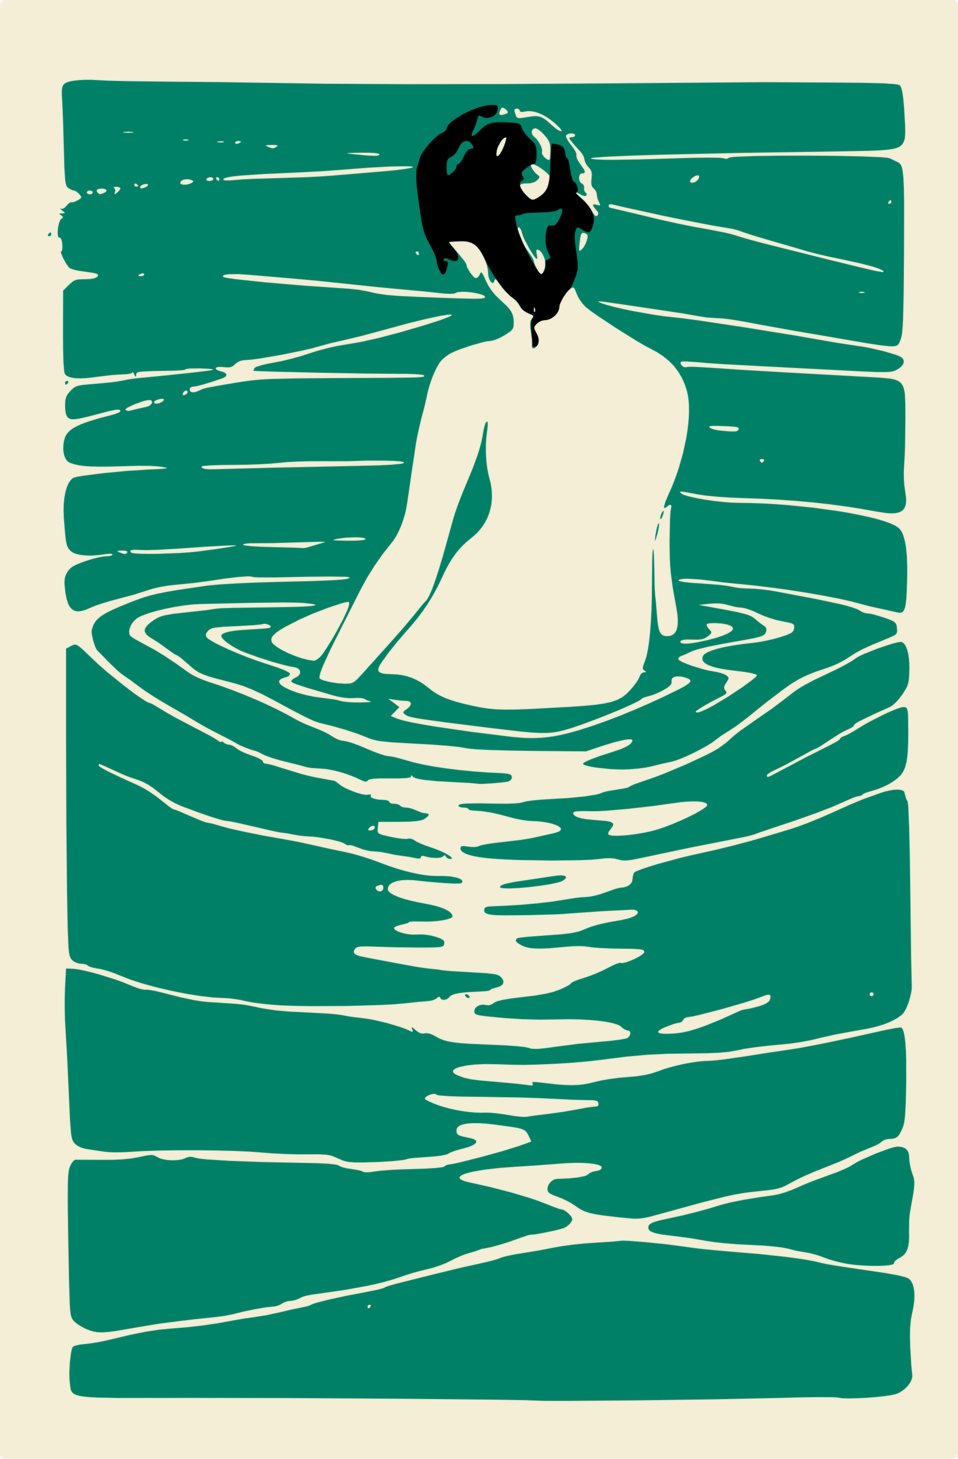 Lady in an Onsen